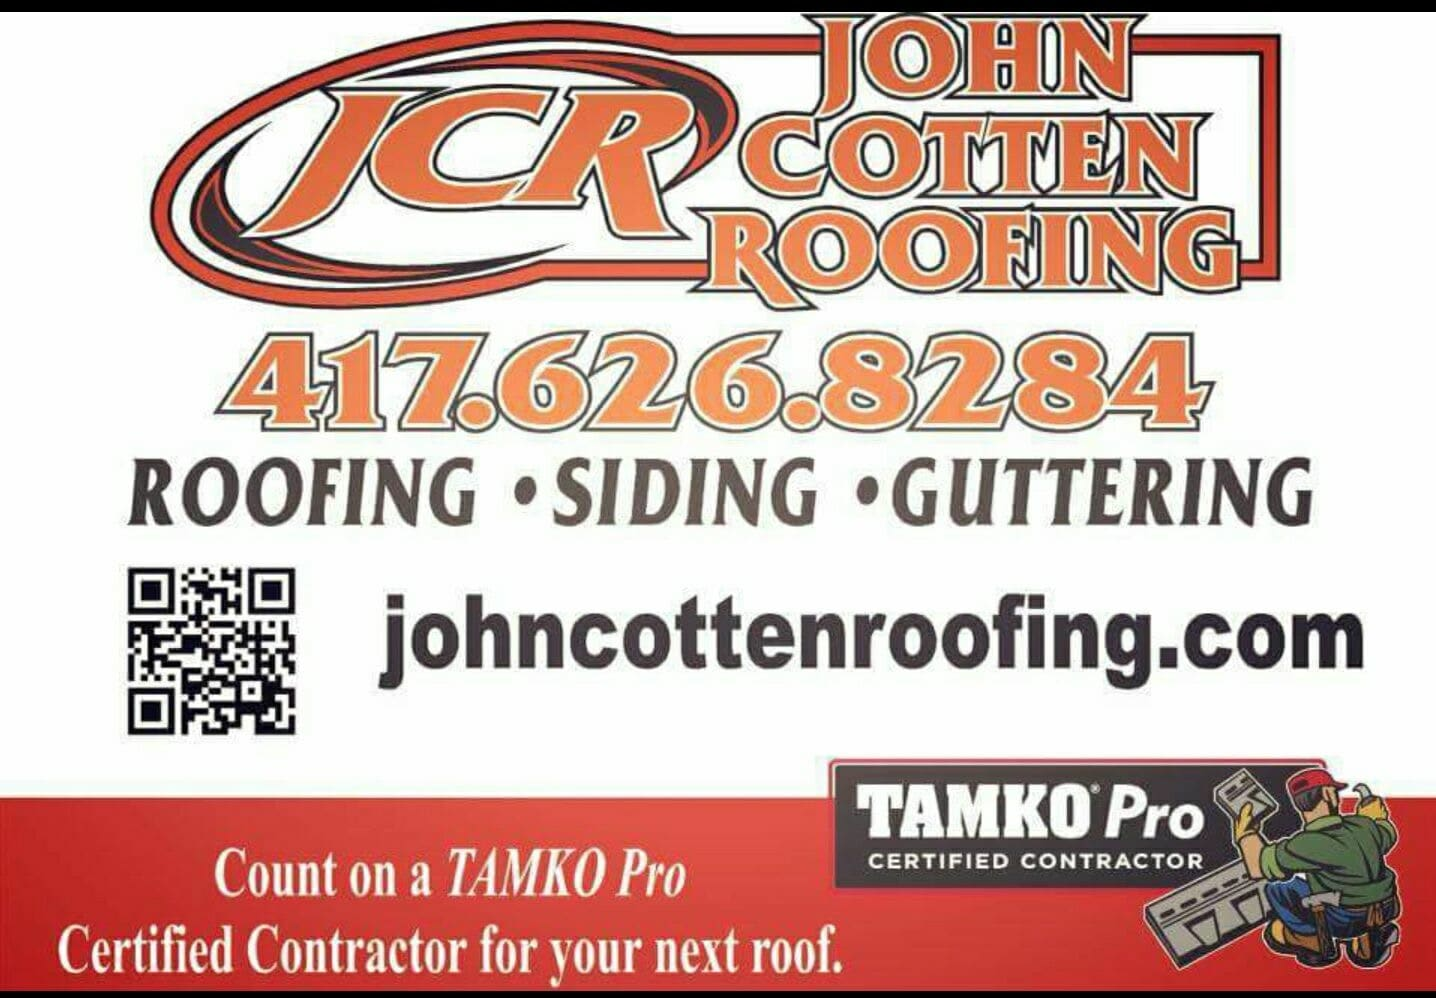 (JCR) John Cotten Roofing & Home improvement